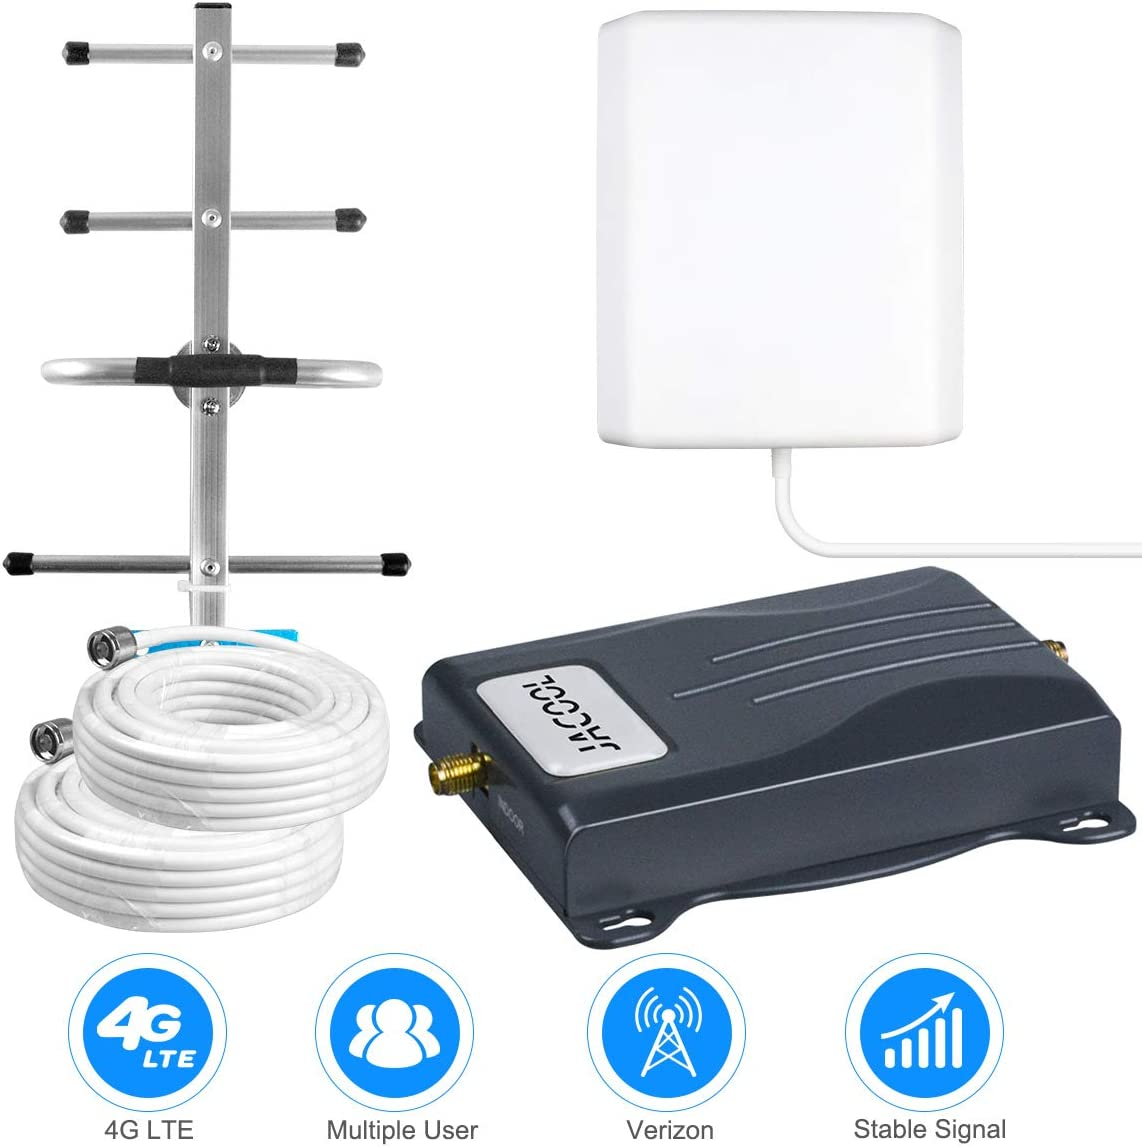 Cell Phone Signal Booster 4G LTE Verizon Signal Booster 700MHz Band 13 Verizon Mobile Phone Signal Booster Amplifier Extender for Remote Area - Boost 4G Data & Voice for Home Use